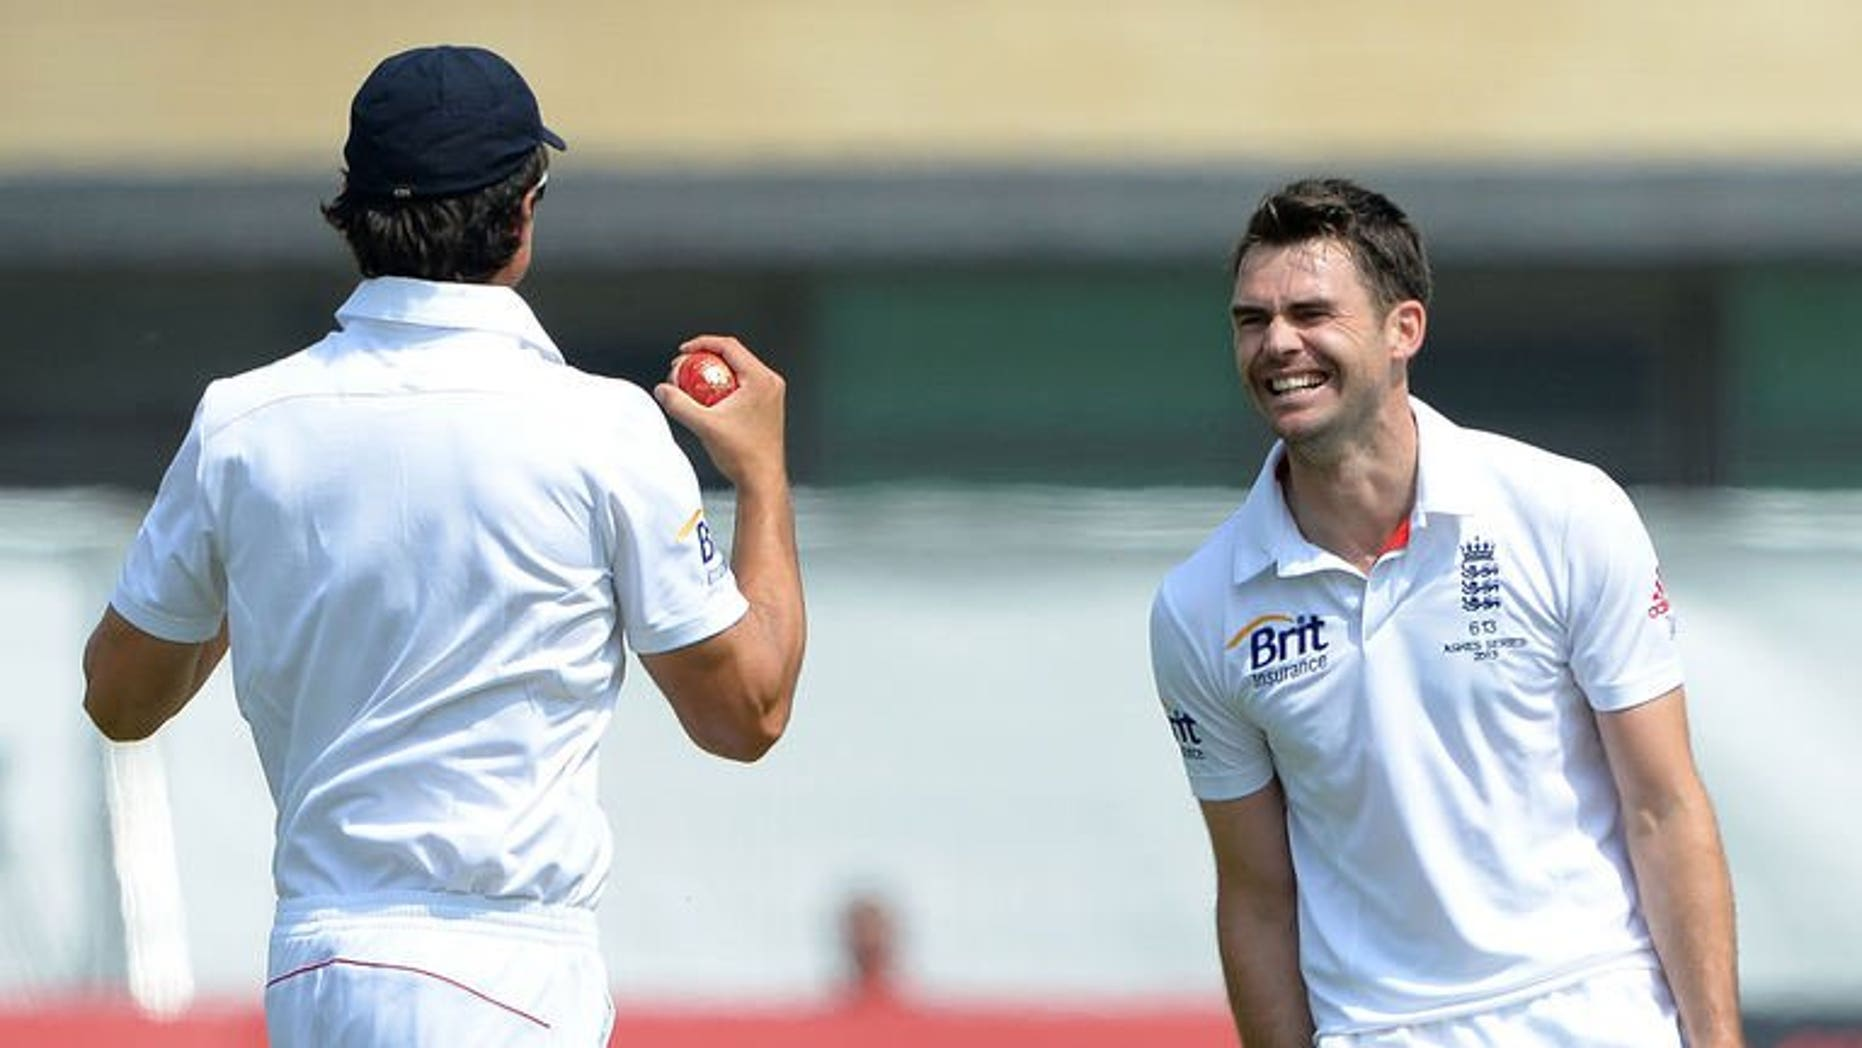 England's James Anderson (R) celebrates with England's Alastair Cook after claiming the wicket of Australia's Mitchell Starc during the fifth day of the first Ashes cricket test match between England and Australia at Trent Bridge in Nottingham, central England, on July 14, 2013.